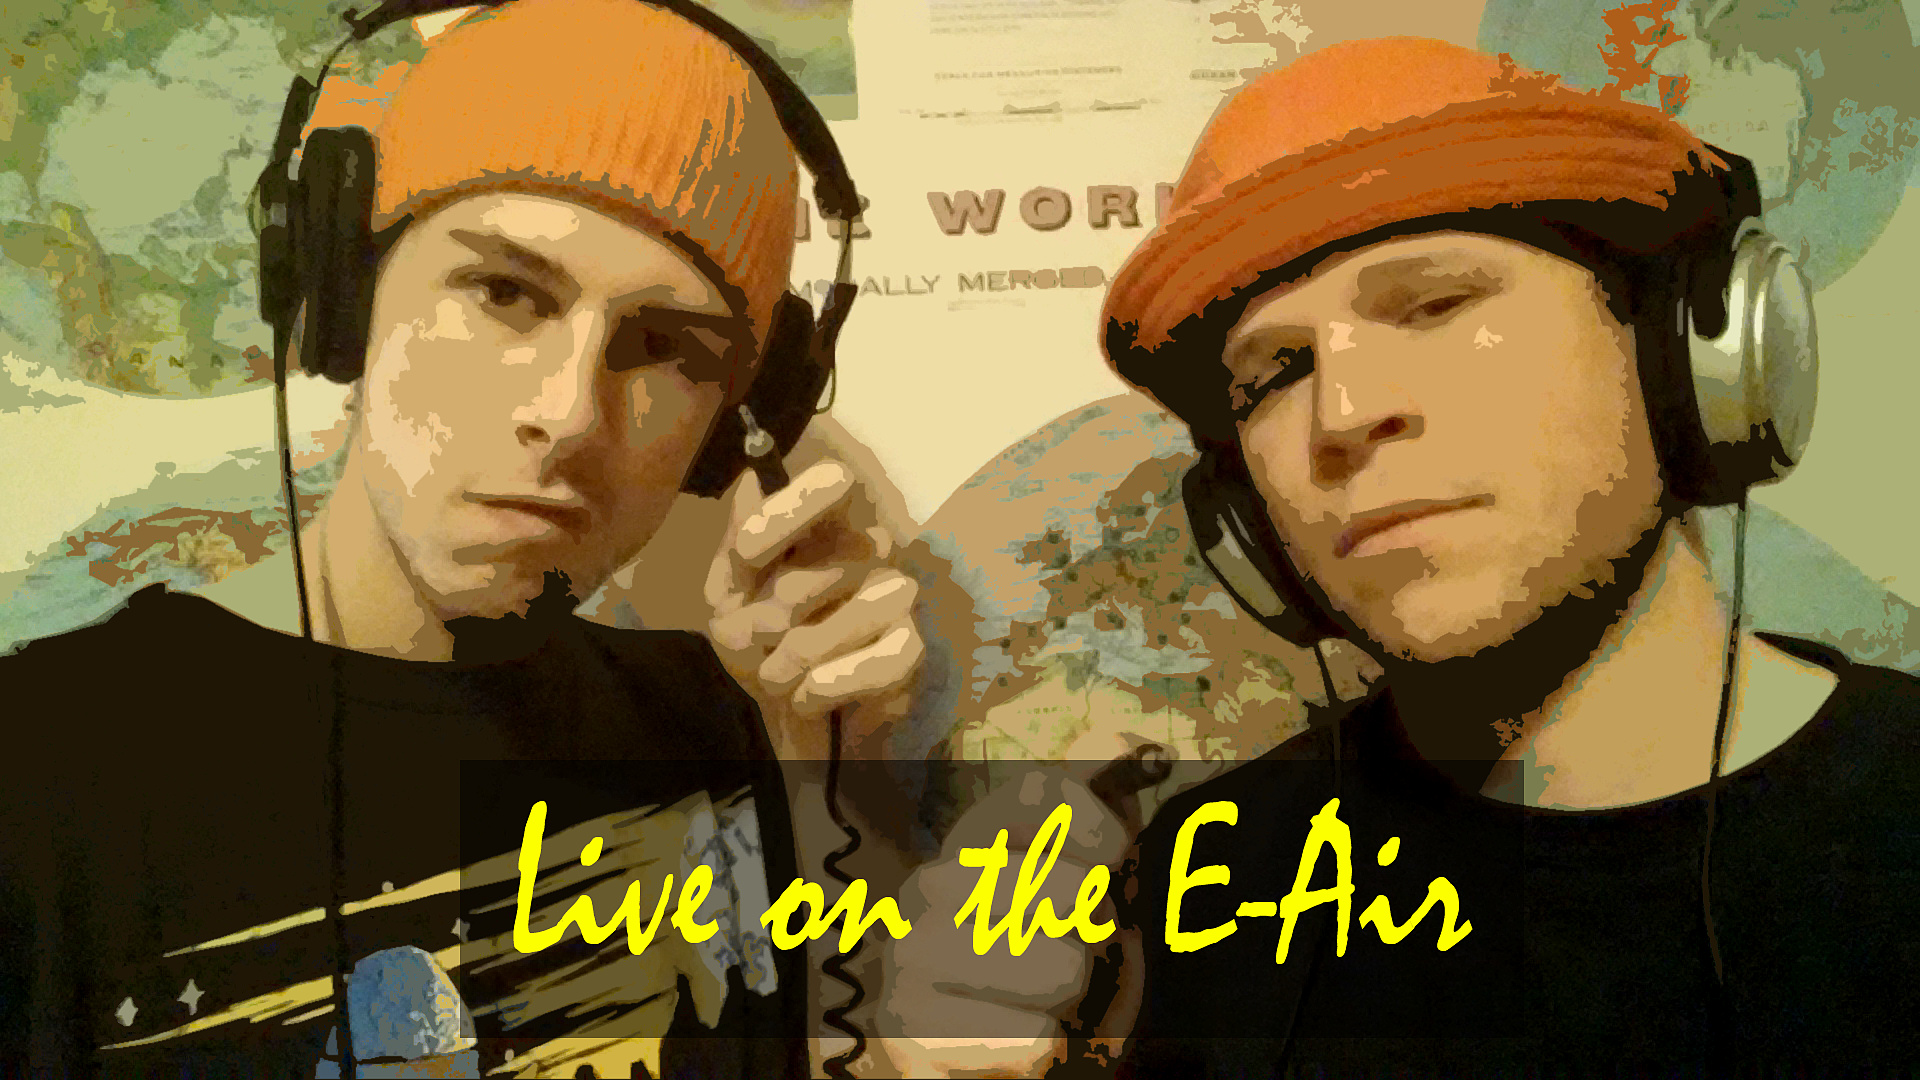 Saturday: Live on the E-Air Broadcast